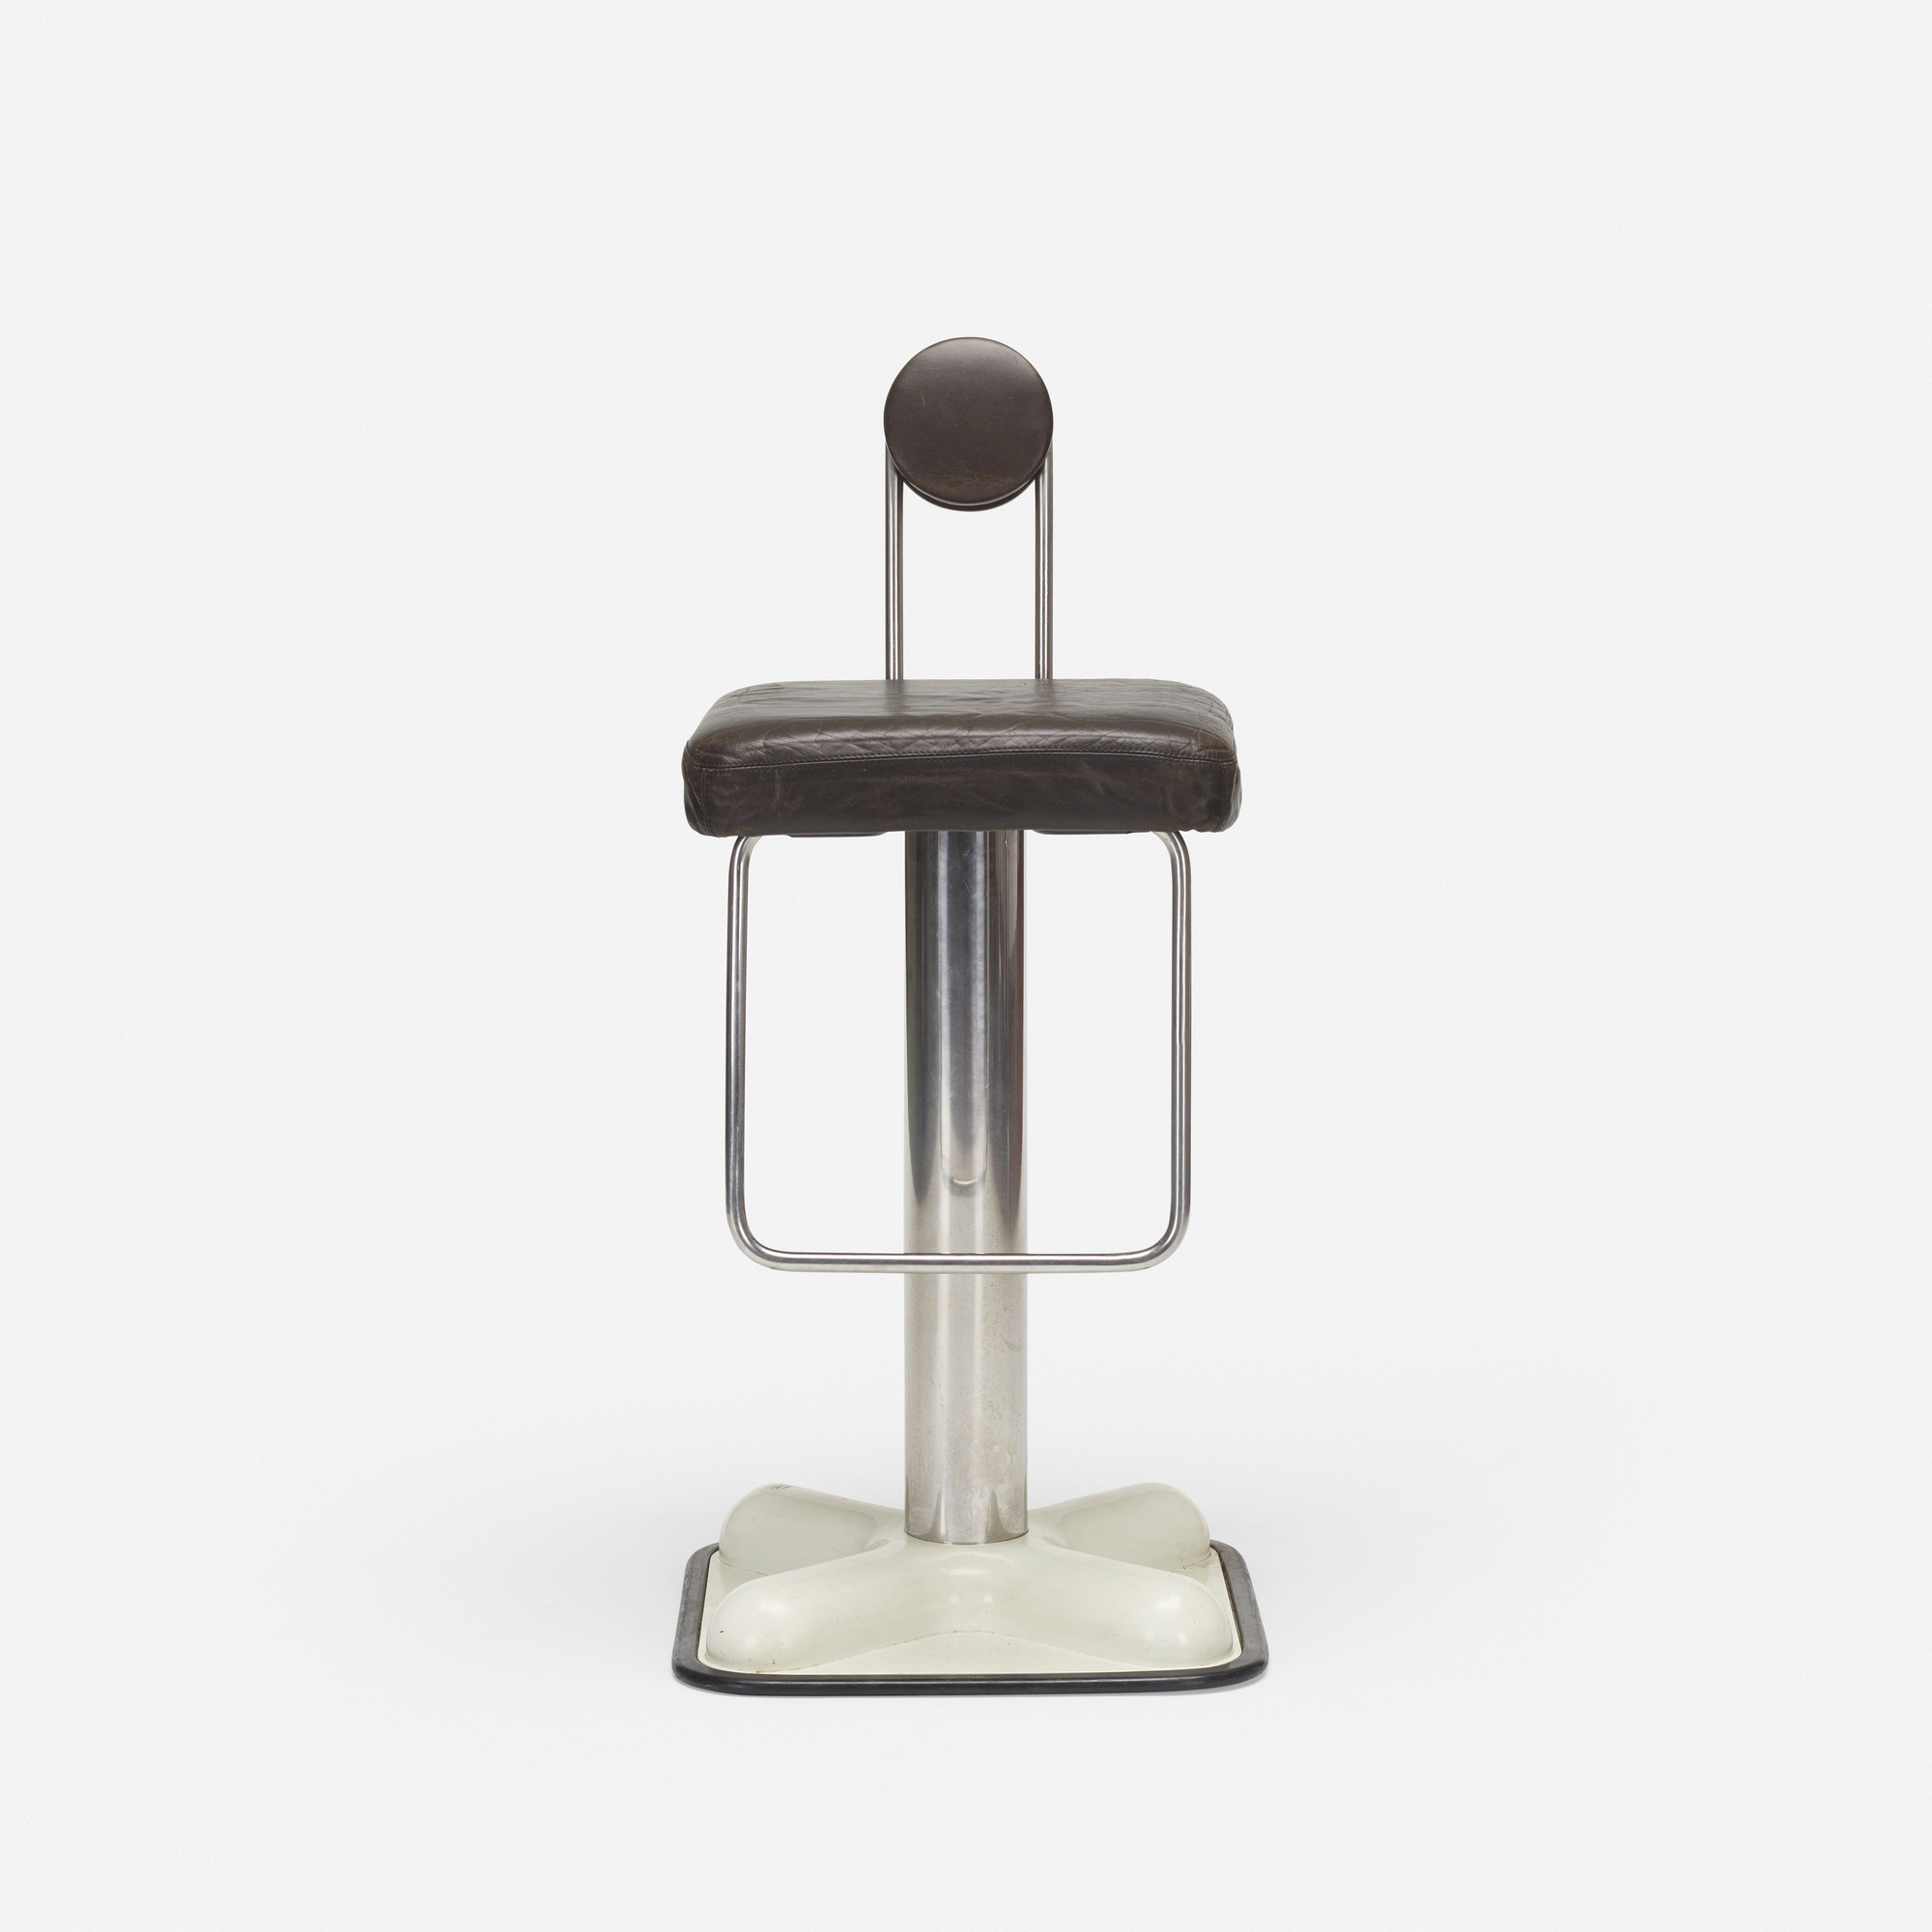 210: Joe Colombo / Birillo stool (2 of 3)